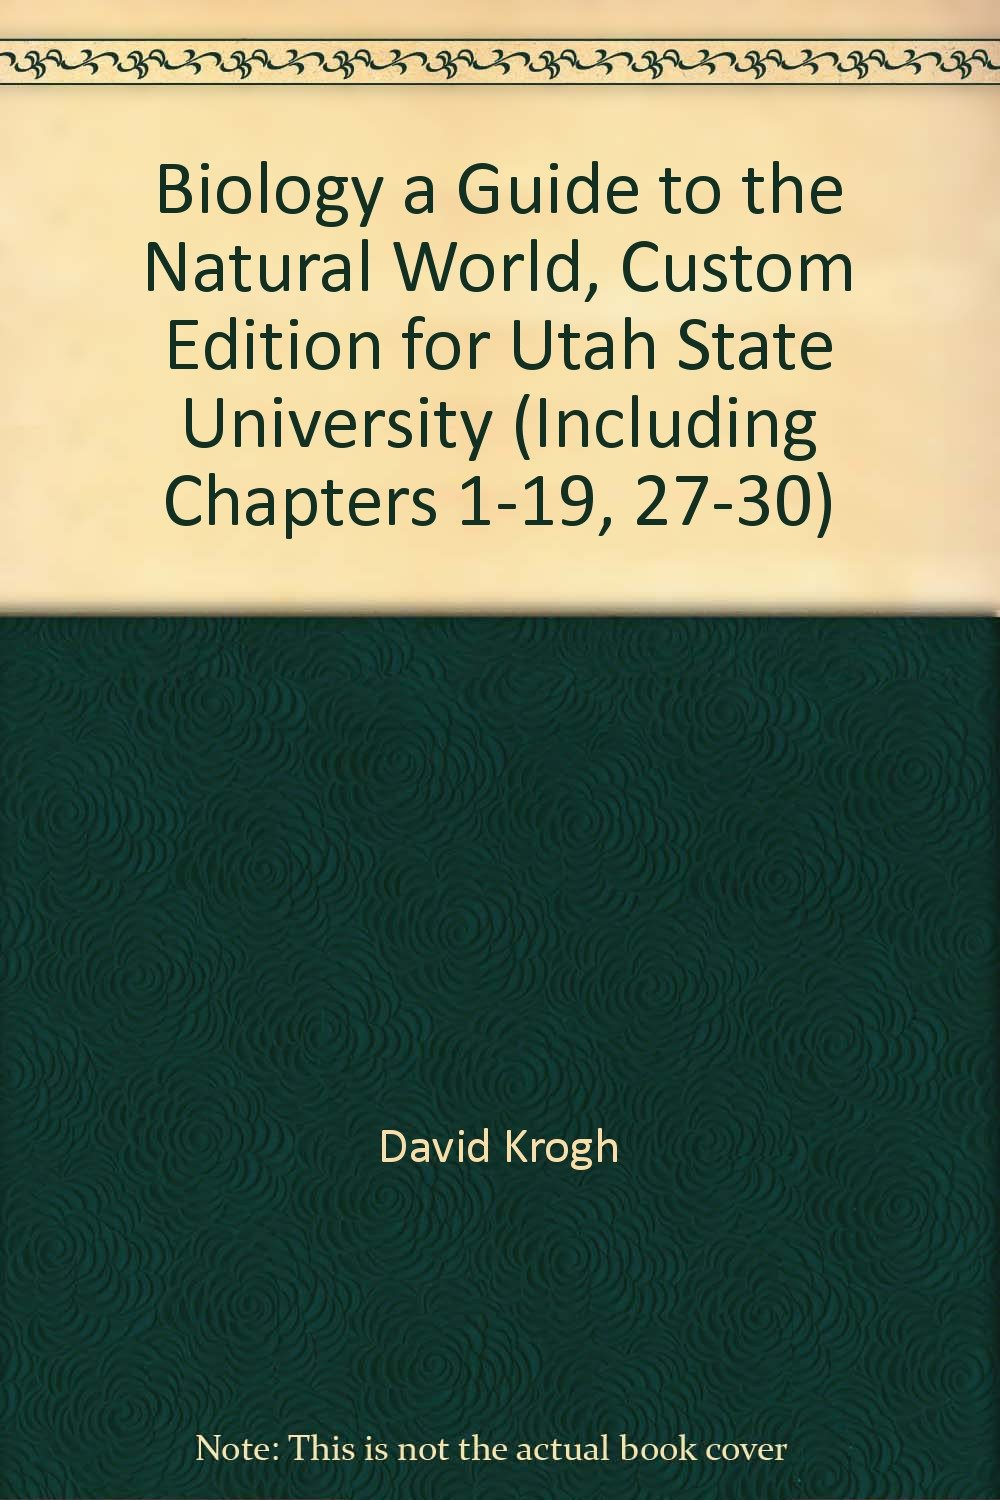 Biology a Guide to the Natural World, Custom Edition for Utah State  University (Including Chapters 1-19, 27-30): David Krogh: 9780536704498:  Amazon.com: ...